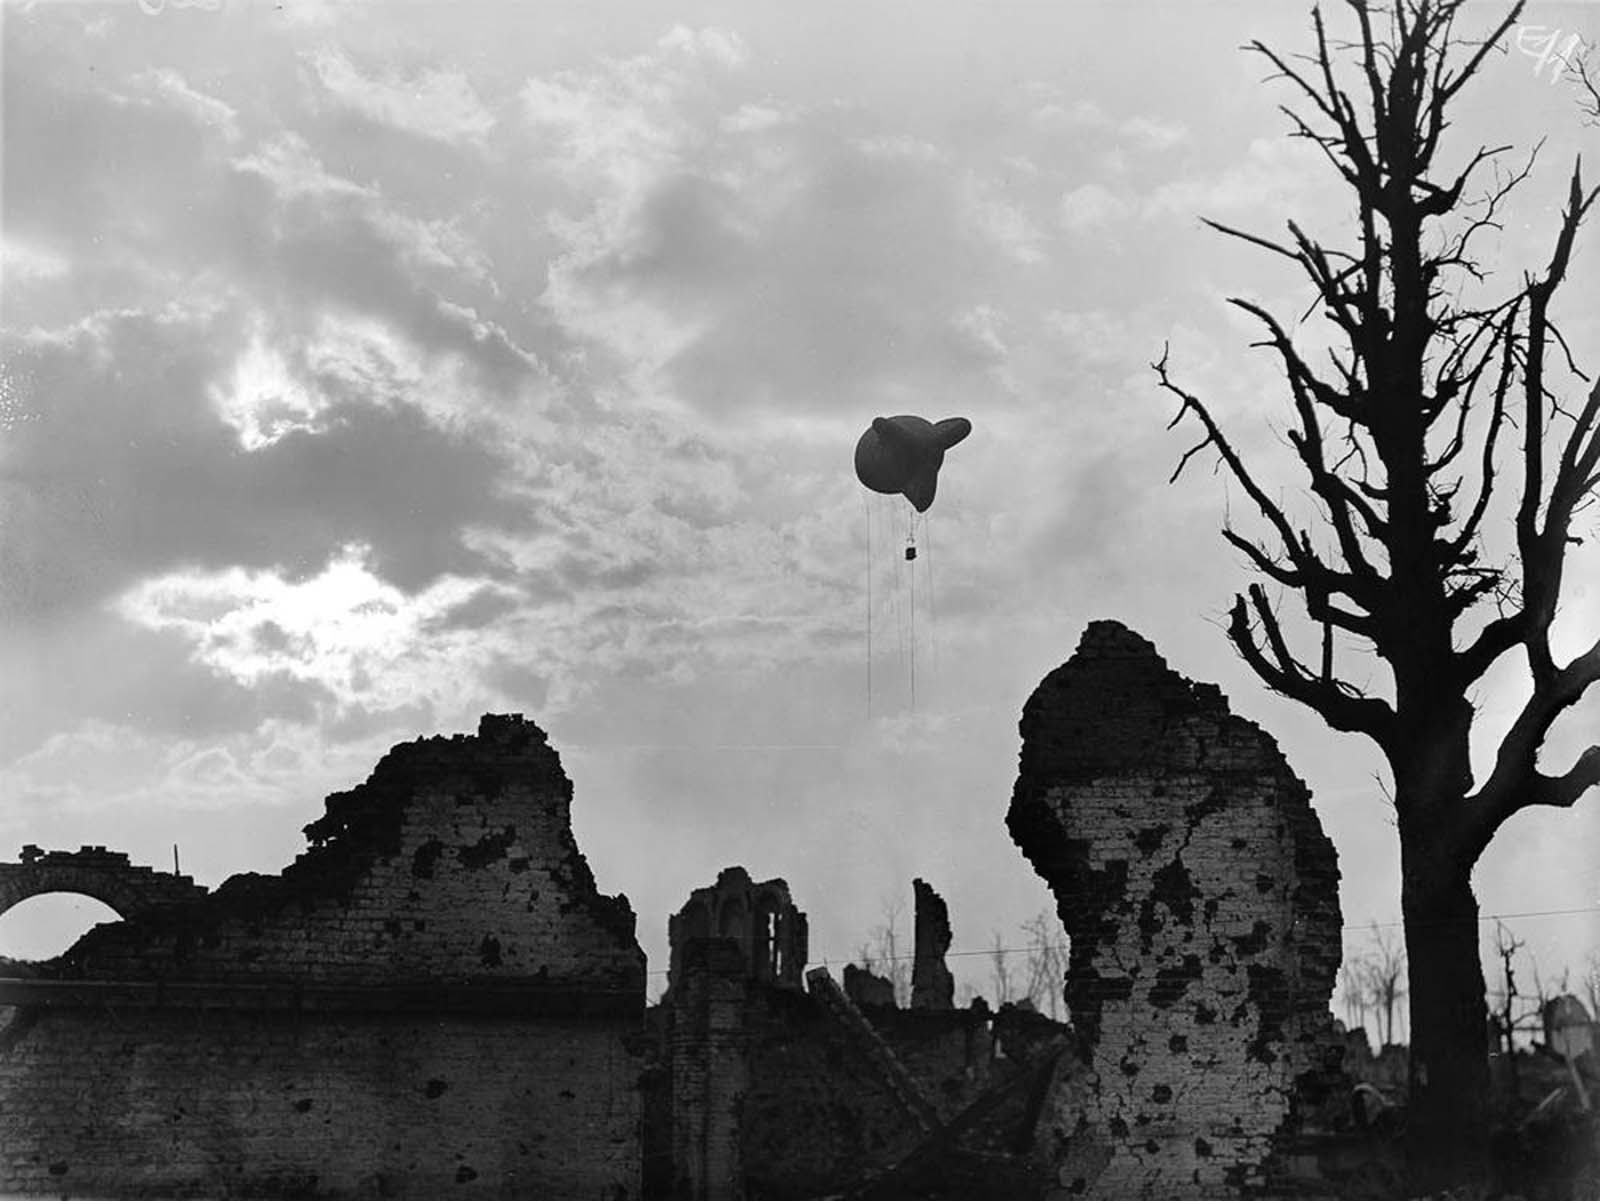 An observation balloon above the ruins of Ypres, Belgium. 1917.